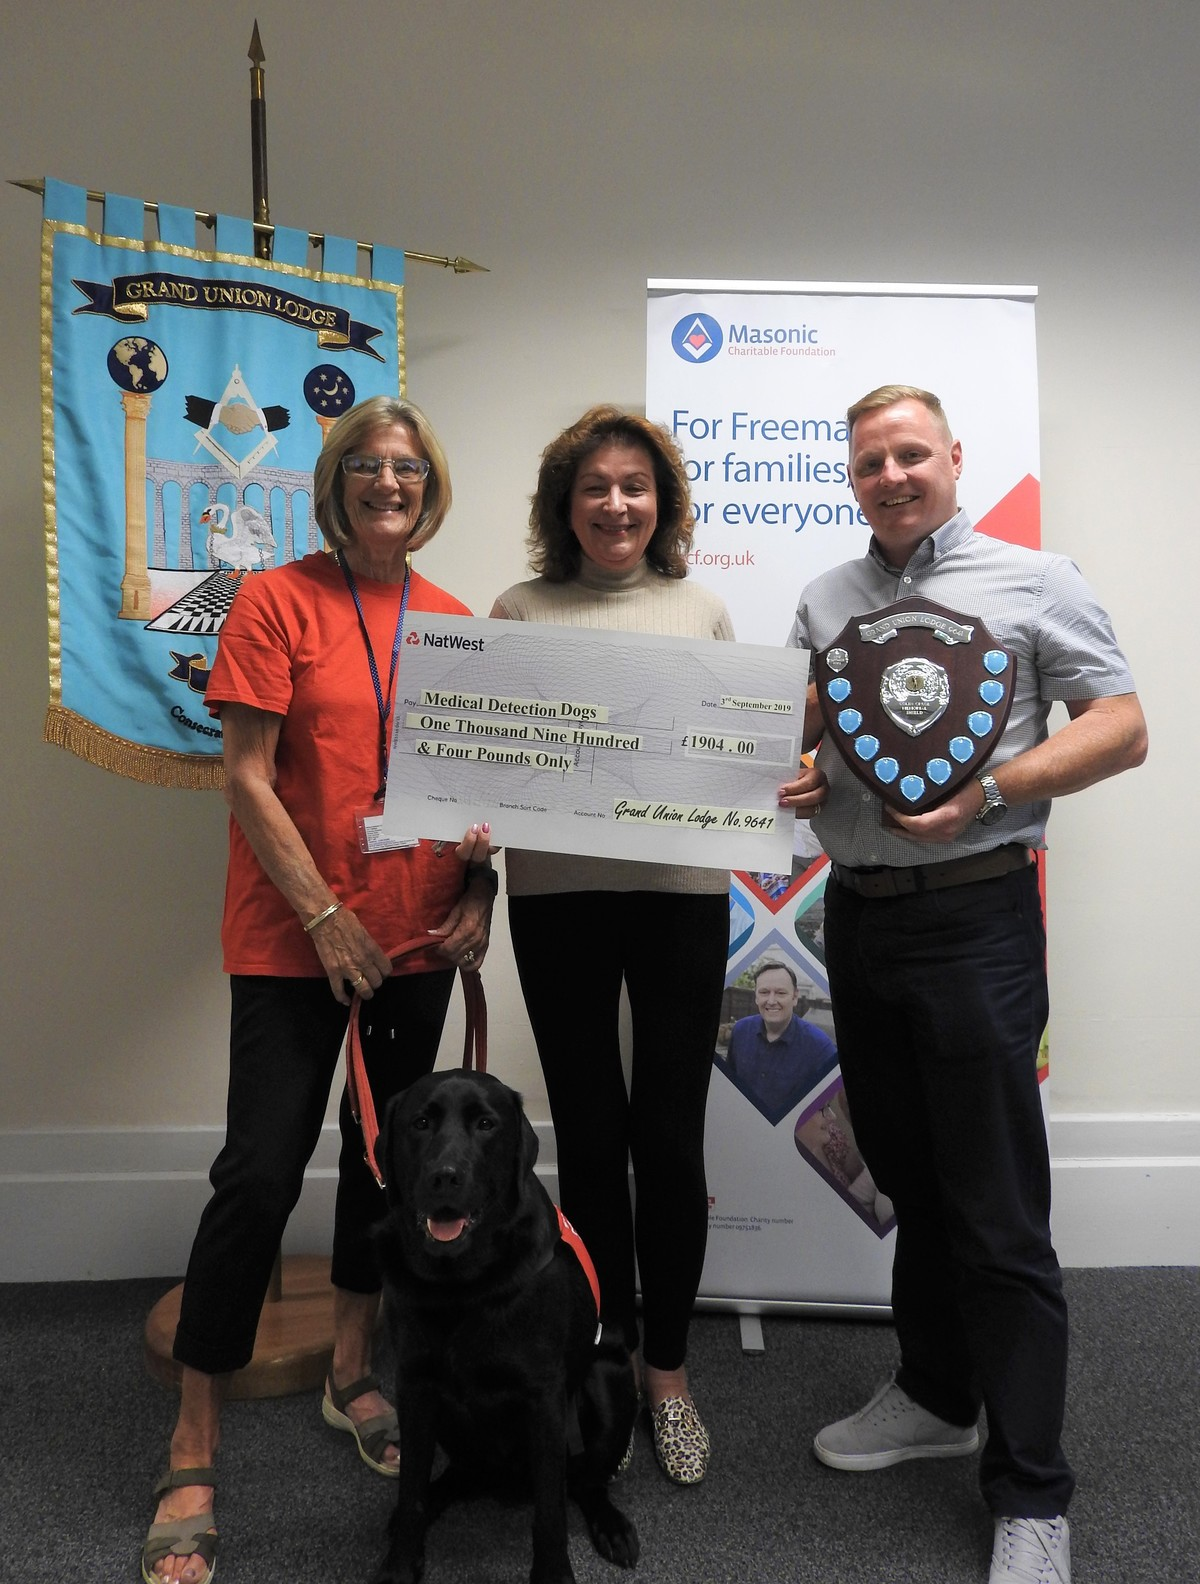 Memorial Golf Day for Medical Detection Dogs